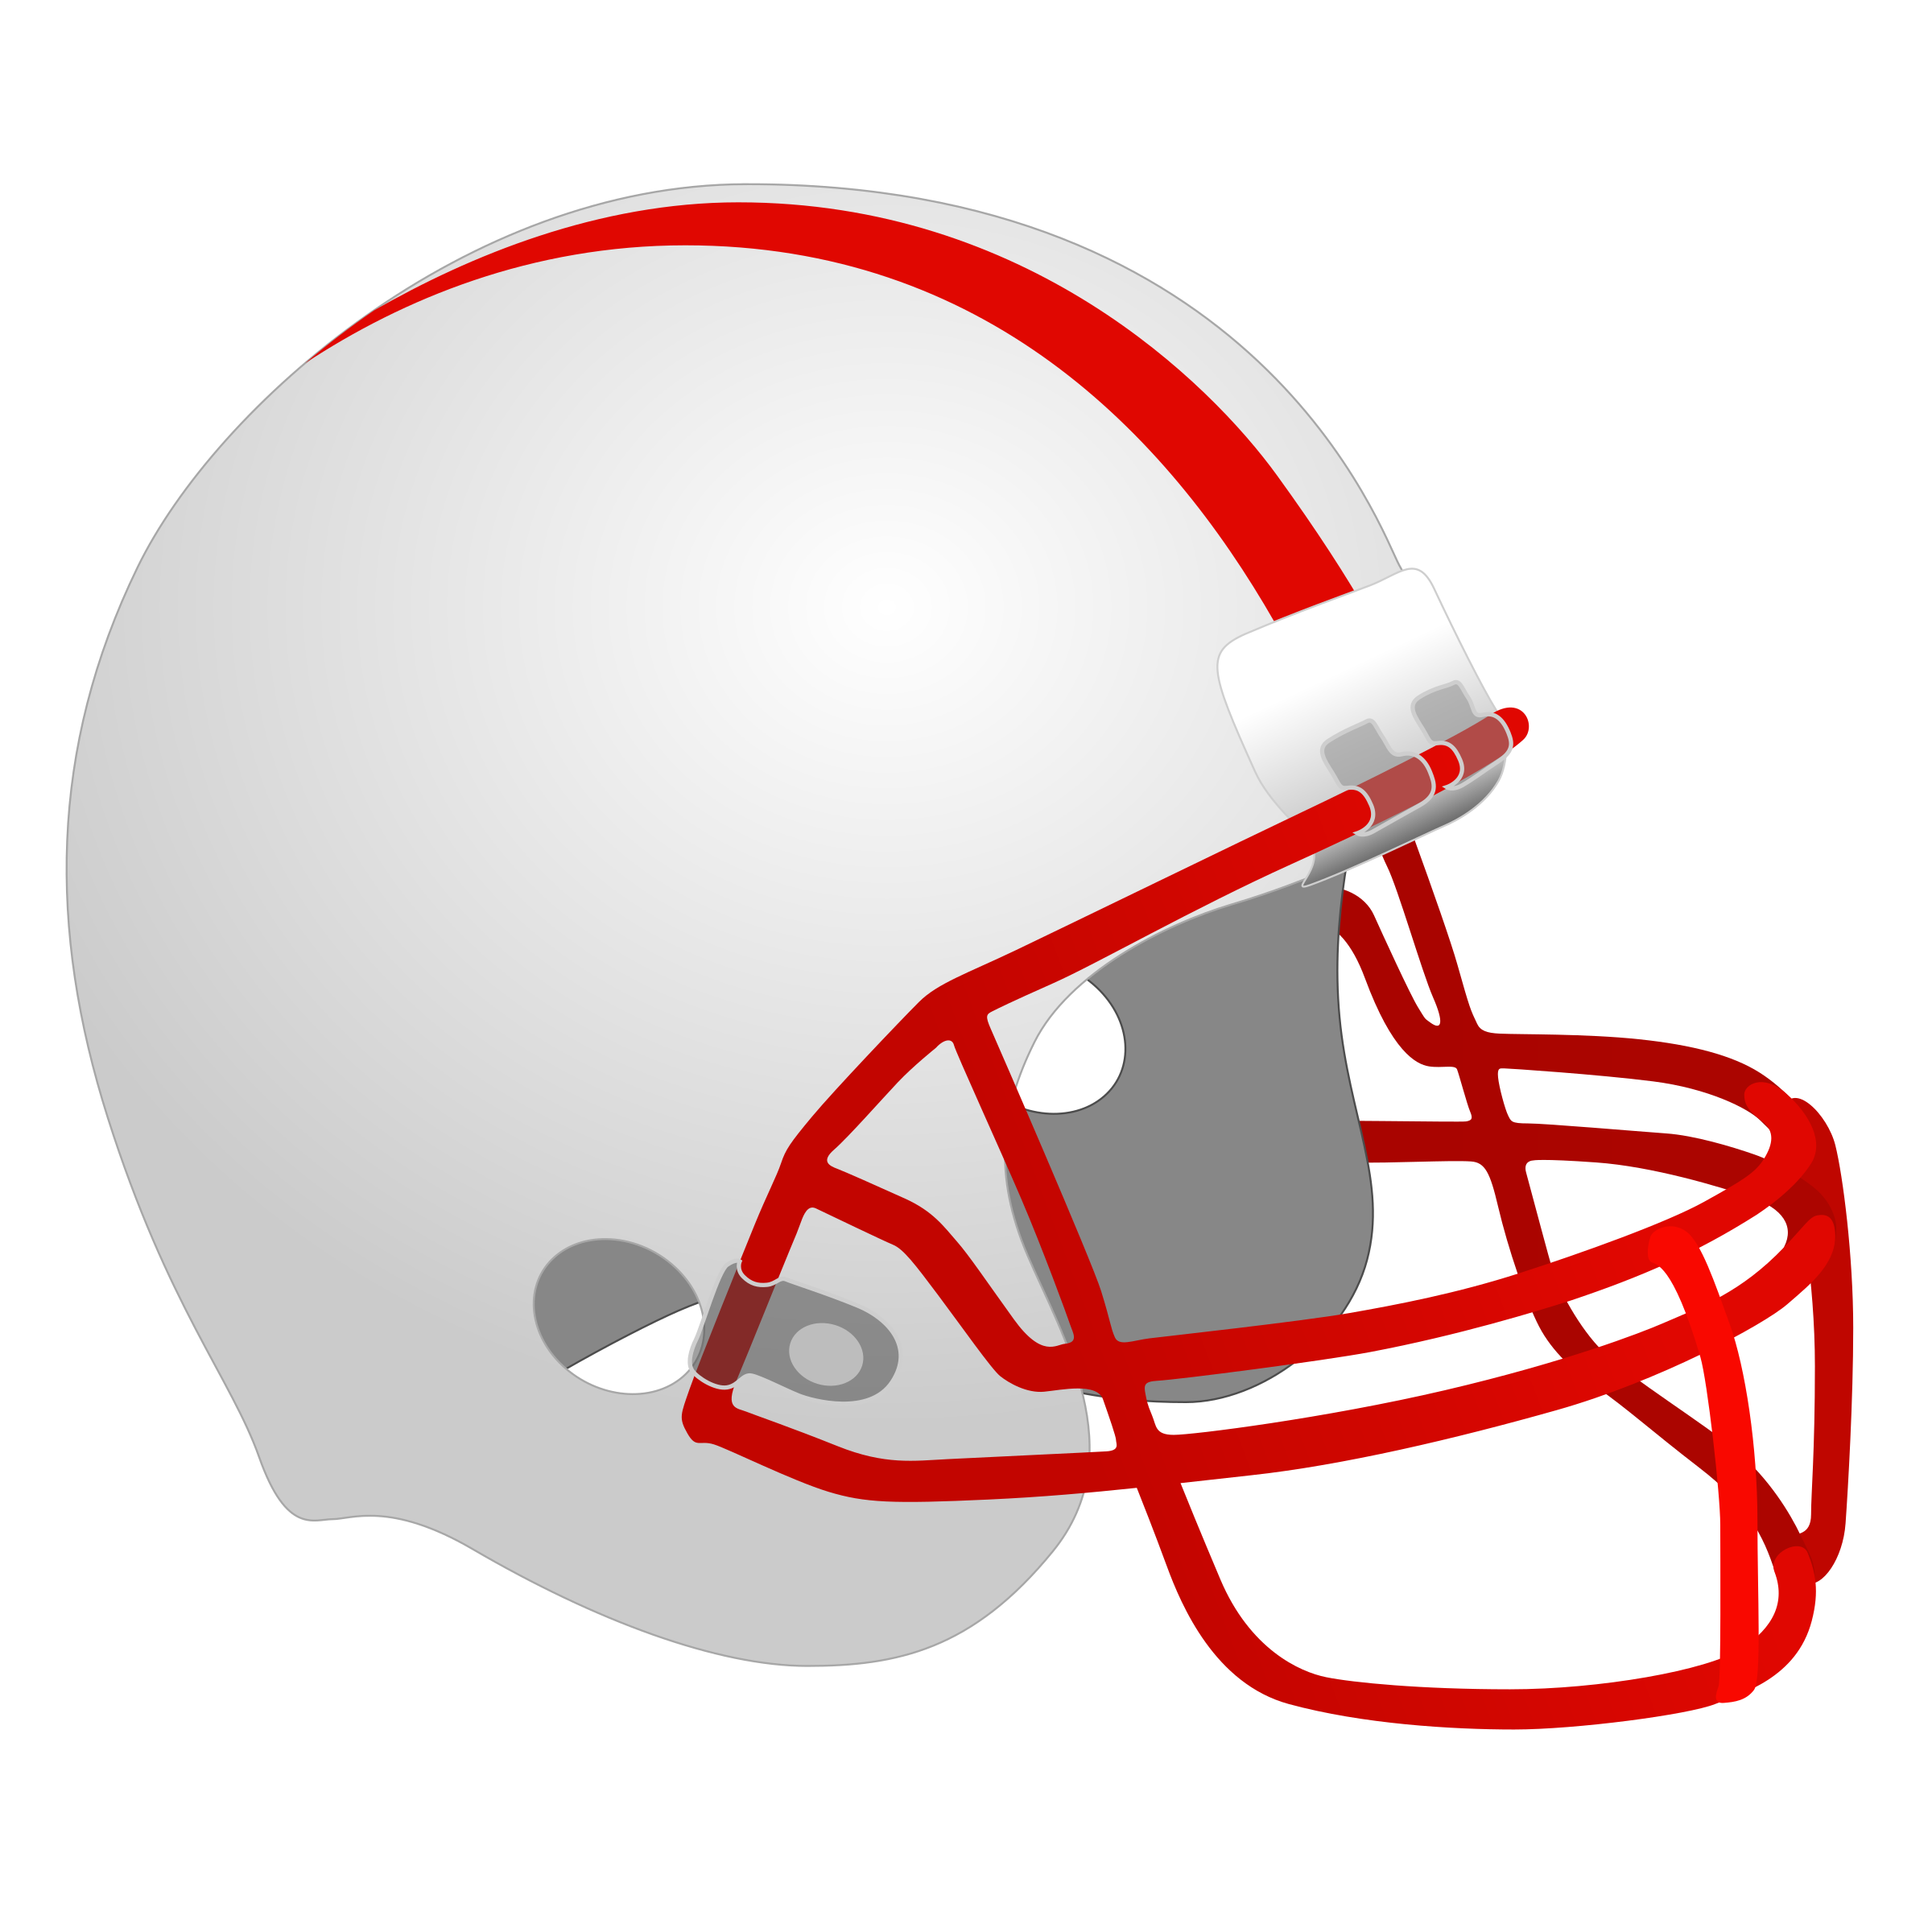 Football Helmet by Simanek